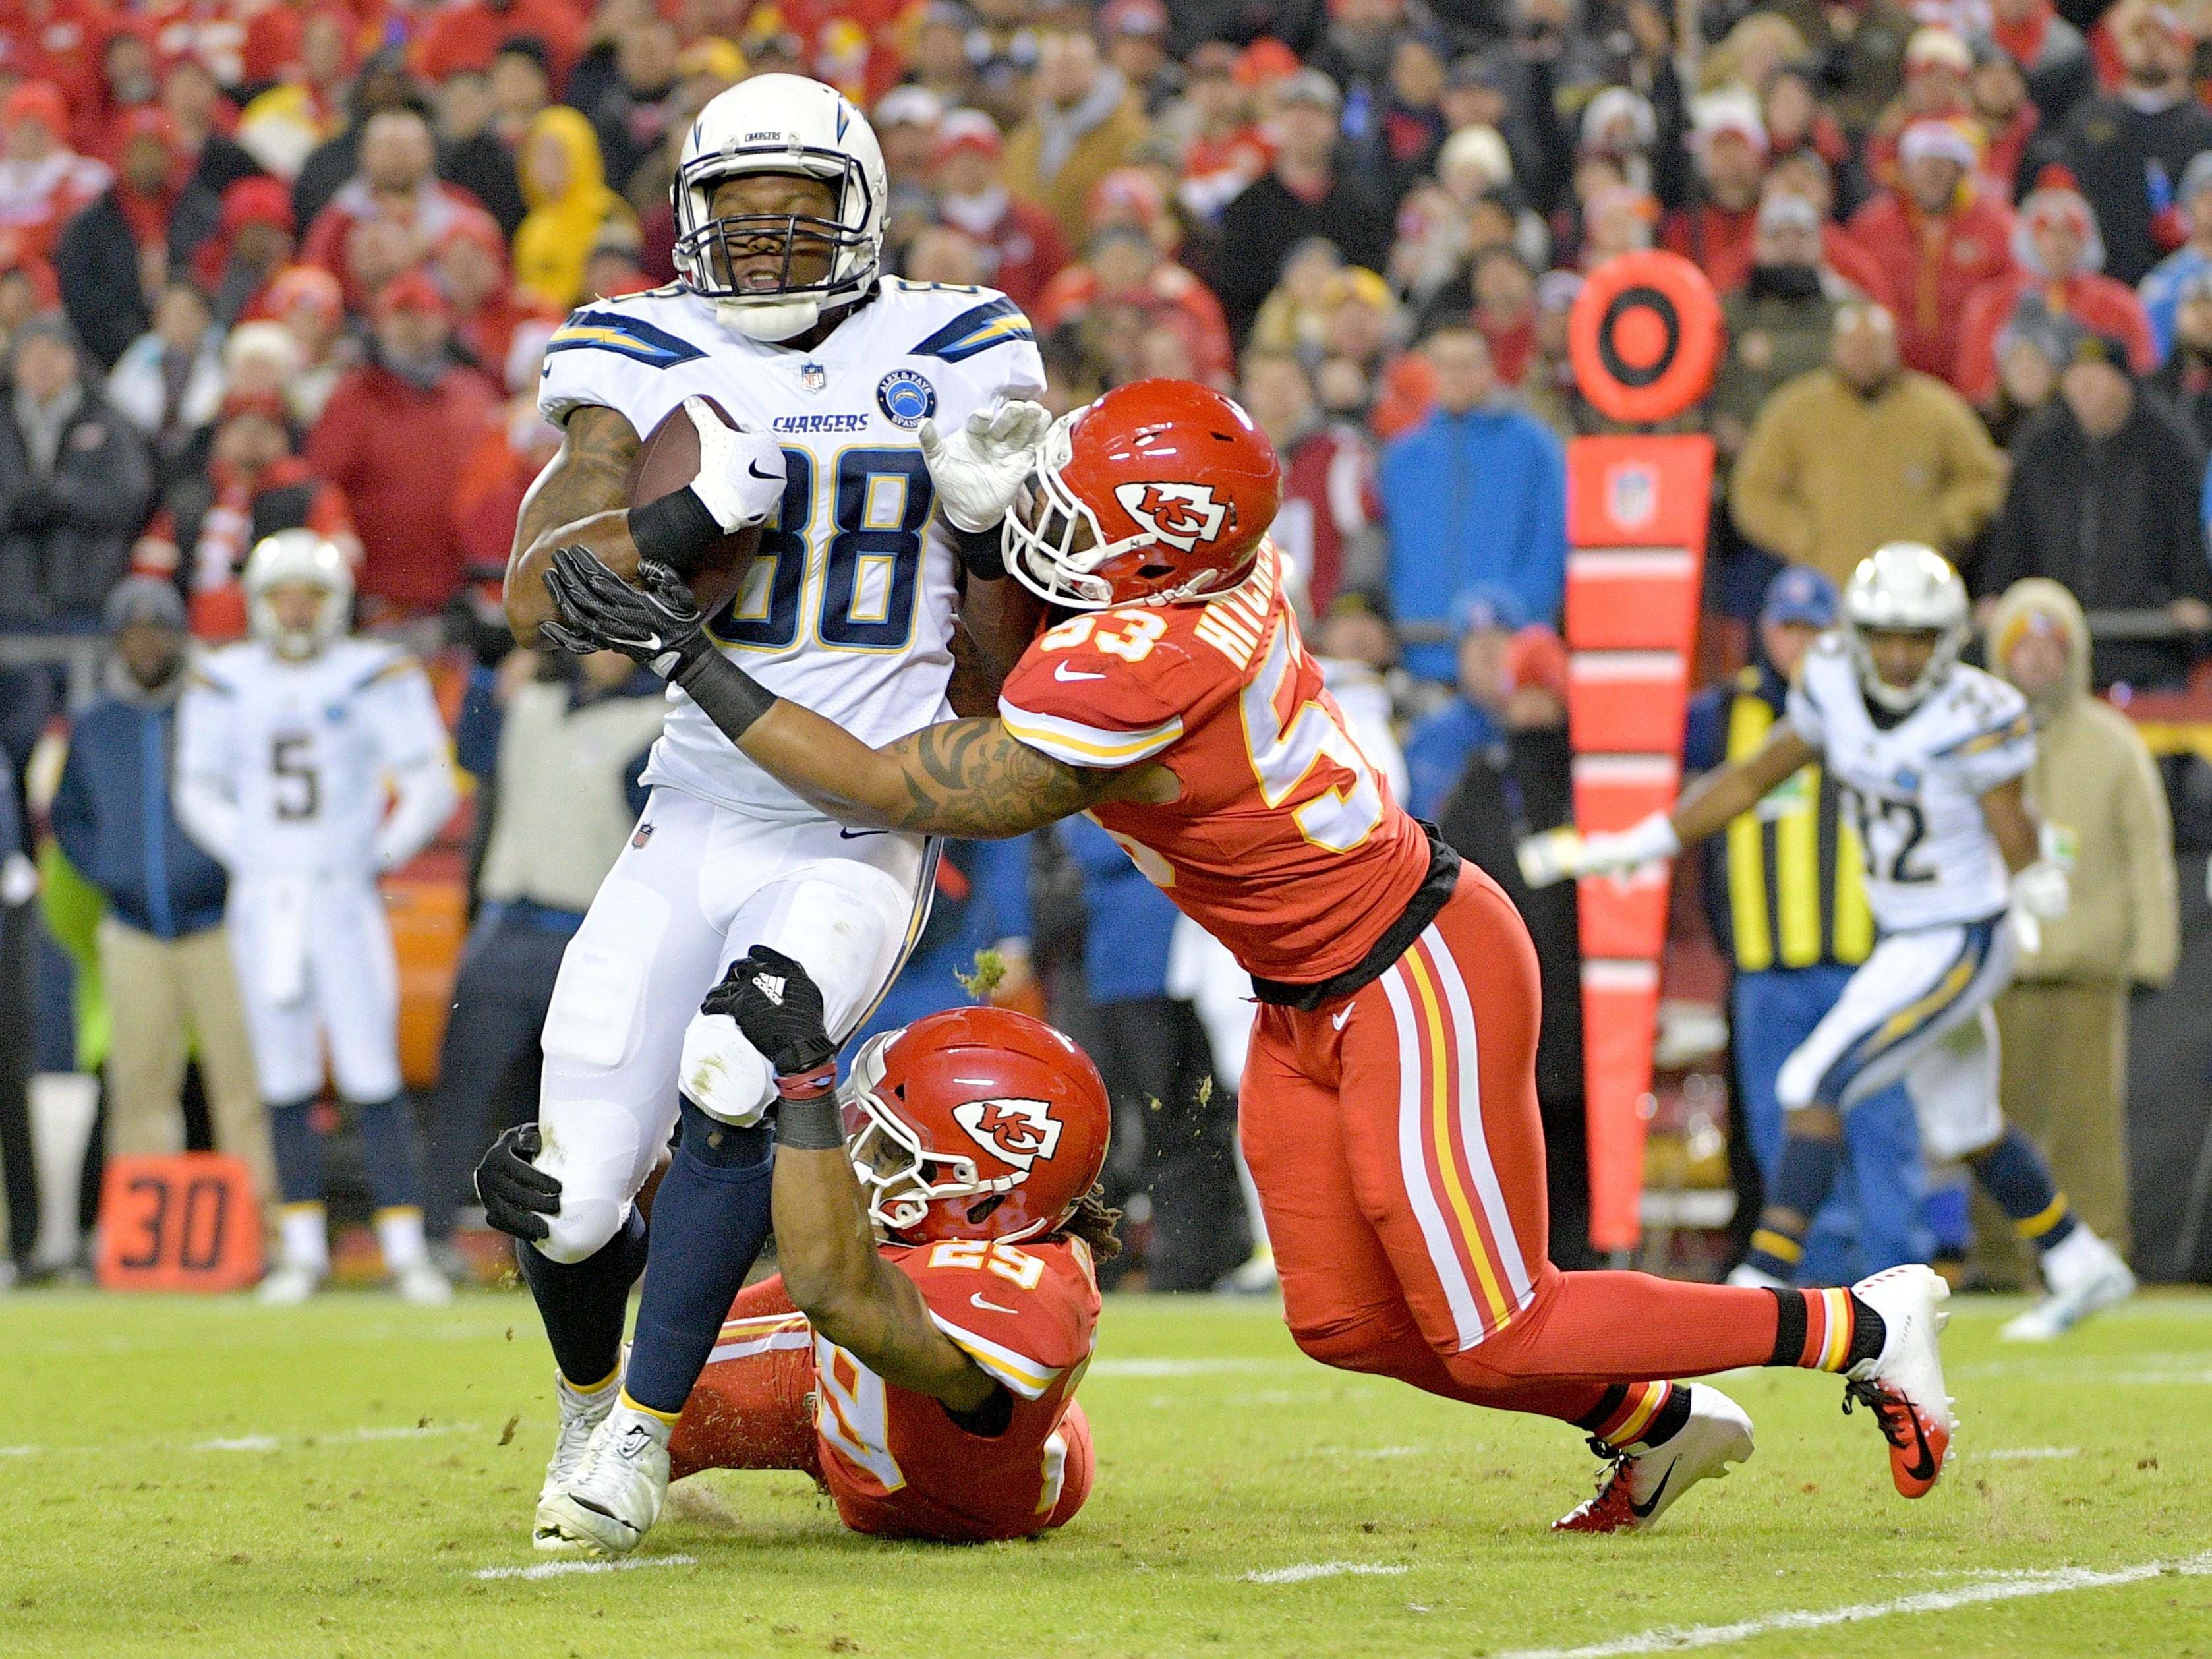 Los Angeles Chargers tight end Virgil Green (88) is tackled by Kansas City Chiefs defensive back Eric Berry (29) and inside linebacker Anthony Hitchens (53) during the first half at Arrowhead Stadium.